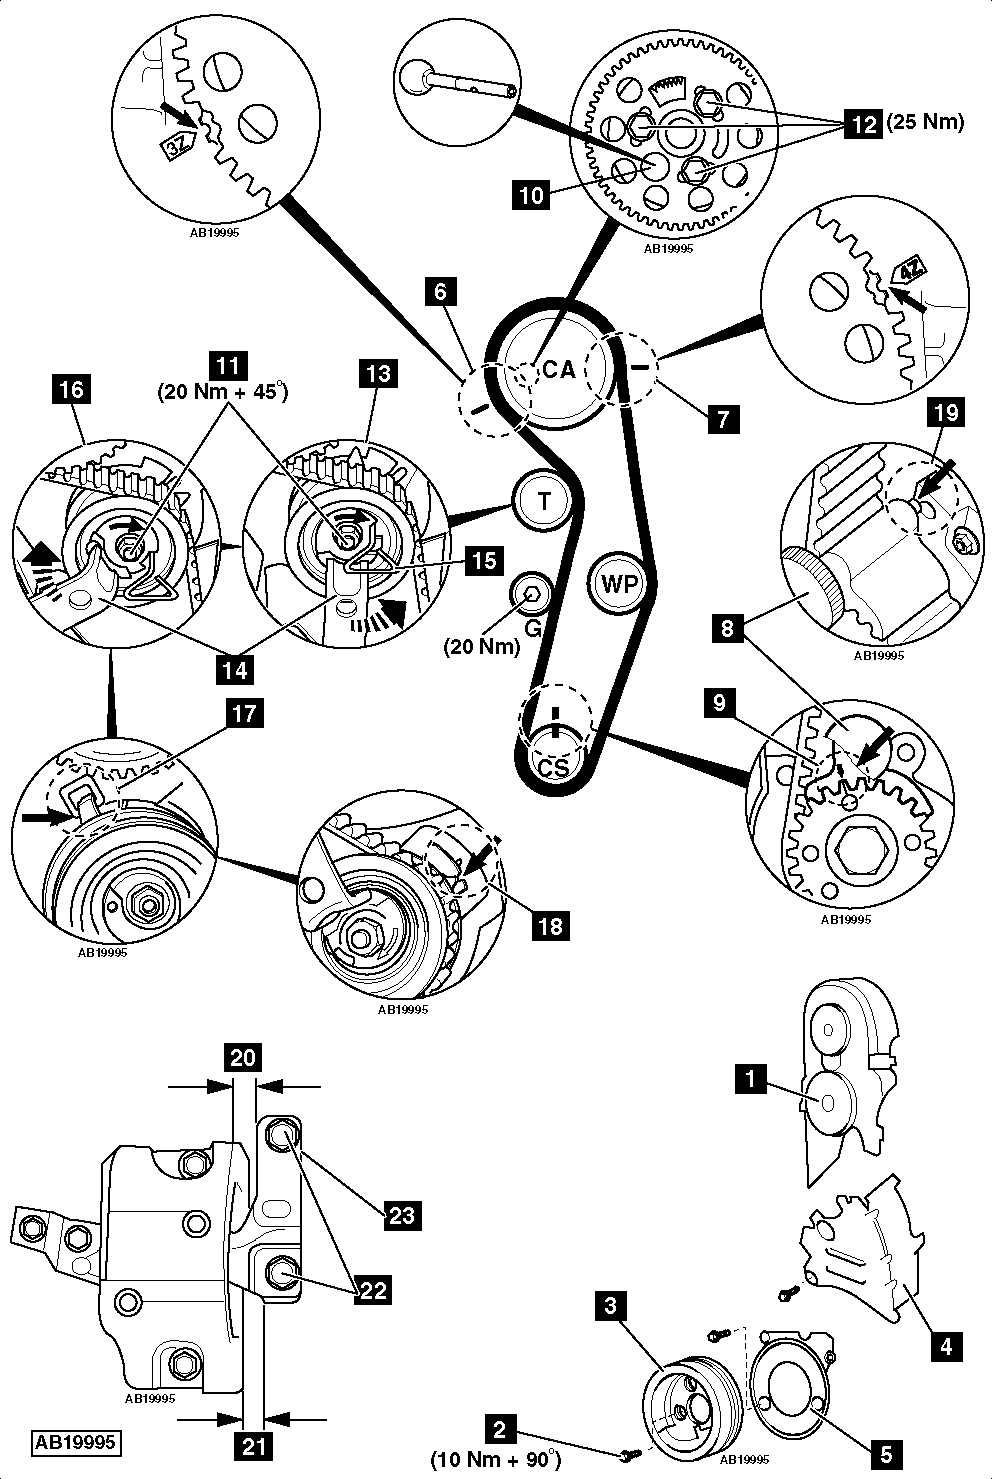 Volvo D12 Engine Belt Diagram further How To Replace Timing Belt On Fiat Ducato 230 1 9 Td 1994 1998 Engine No 1723290 as well T13177200 1997 volvo 850 distributor wiring moreover 96 Jetta Engine Diagram also Volvo Engine Diagram With Labels. on volvo 2 9 engine timing belt